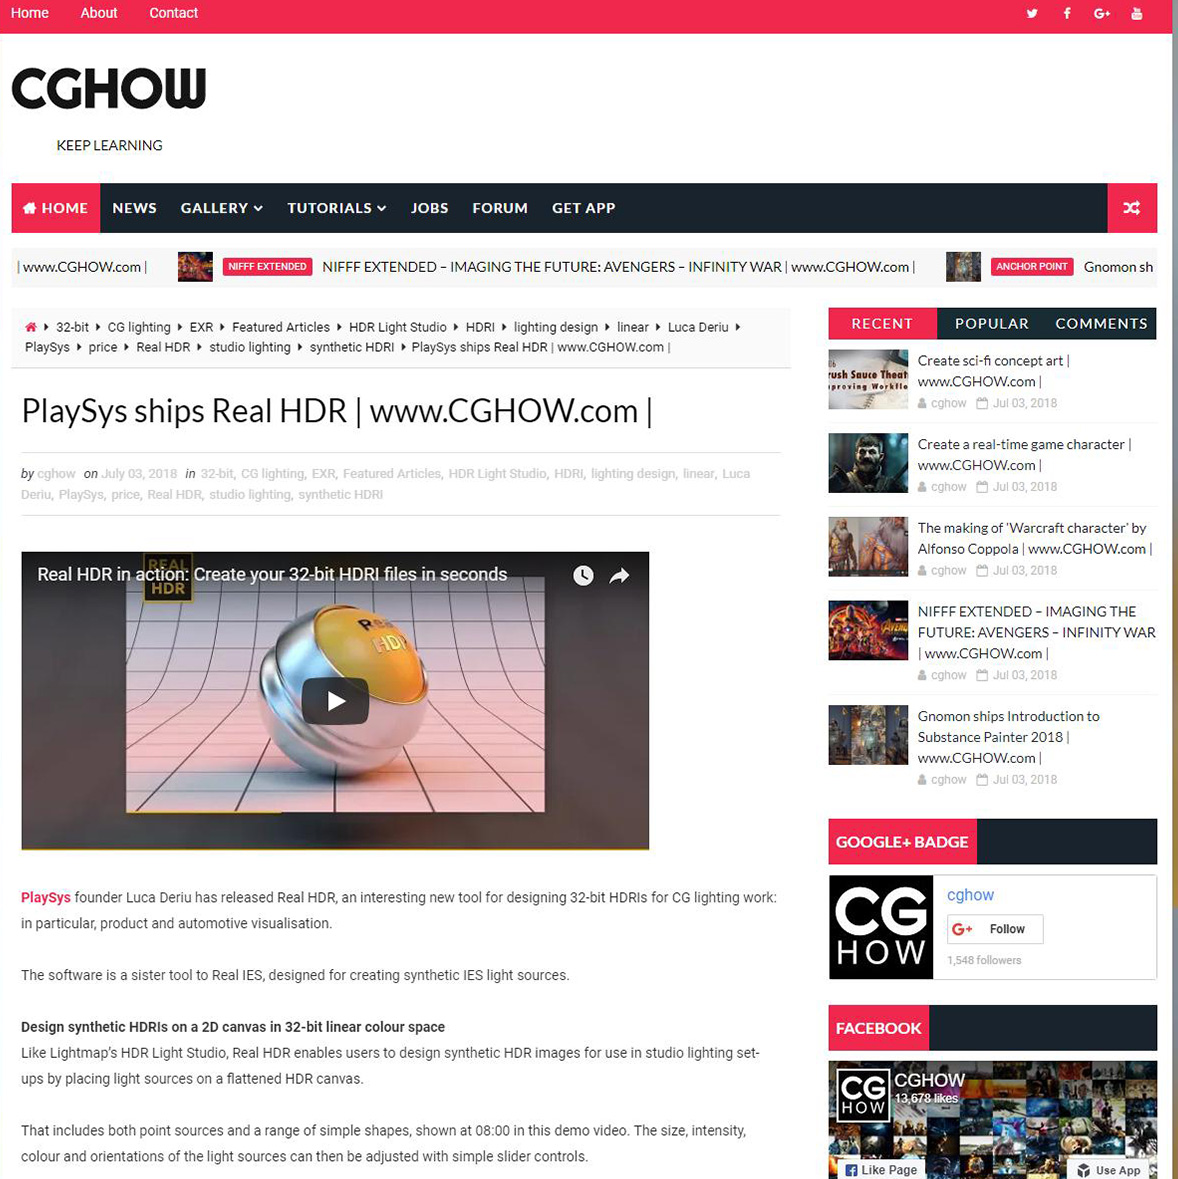 PlaySys ships Real HDR _ www CGHOW.com _ - CGHOW